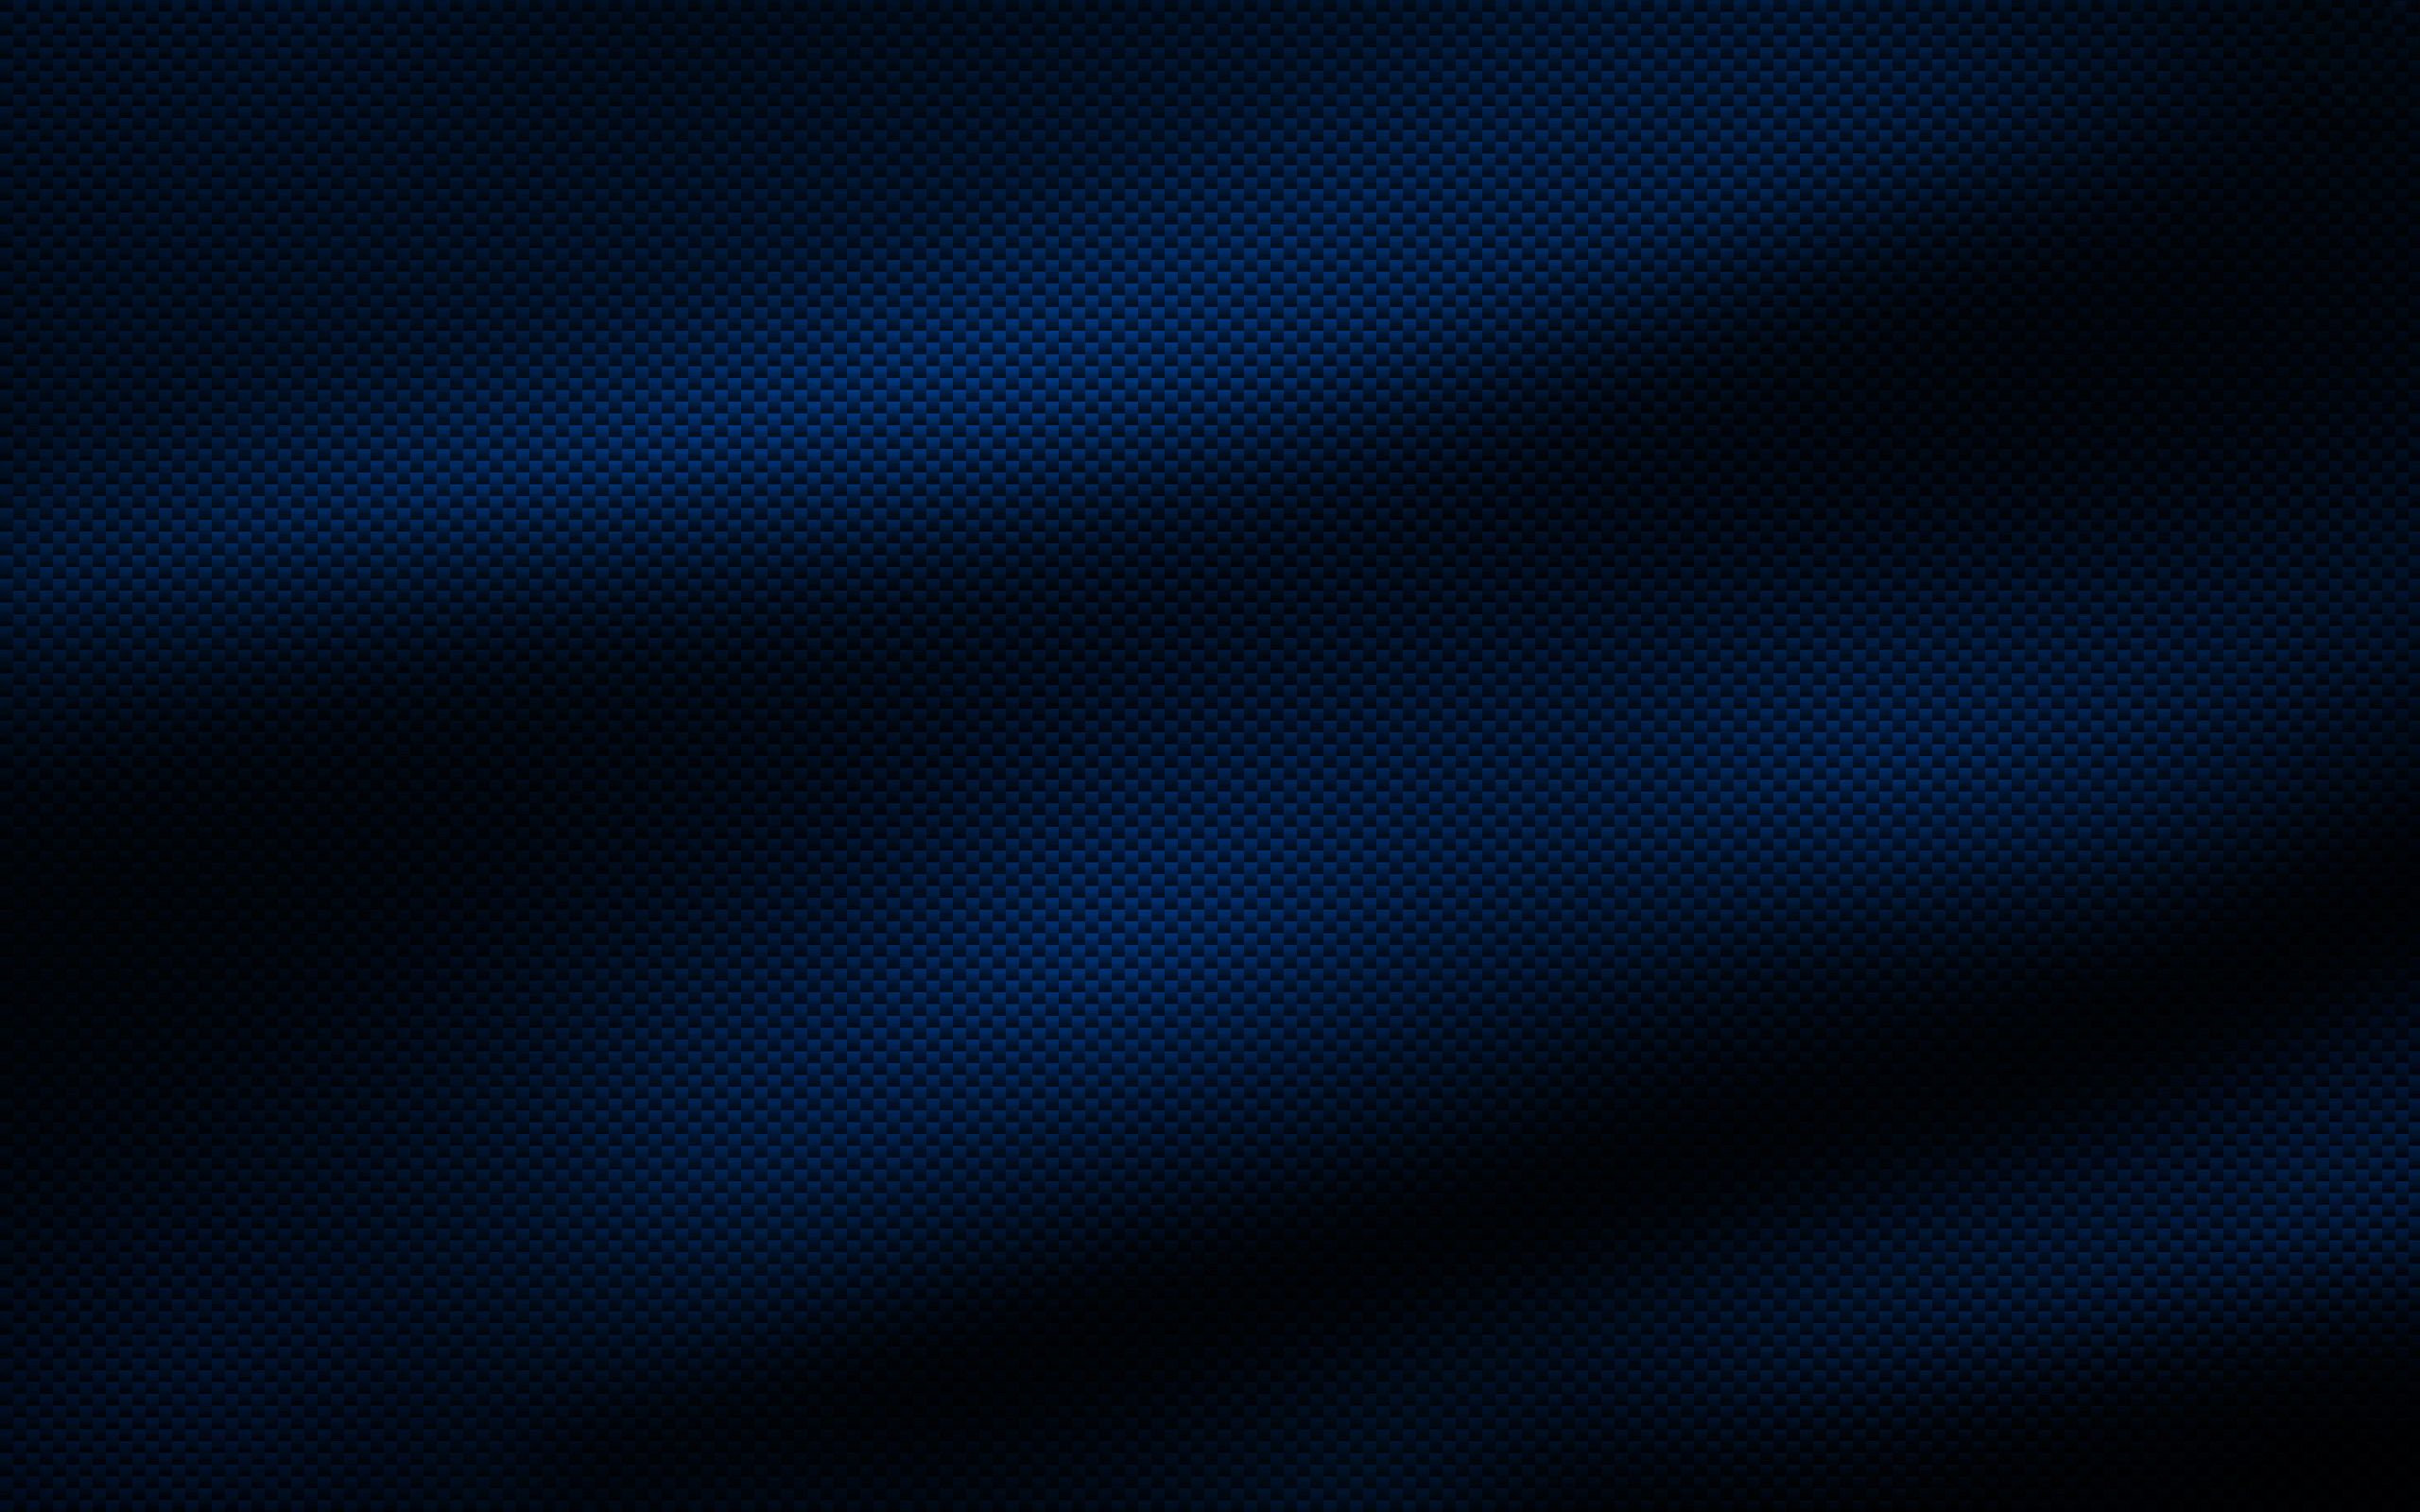 2560x1600 Blue Carbon Fiber Wallpaper #6778048